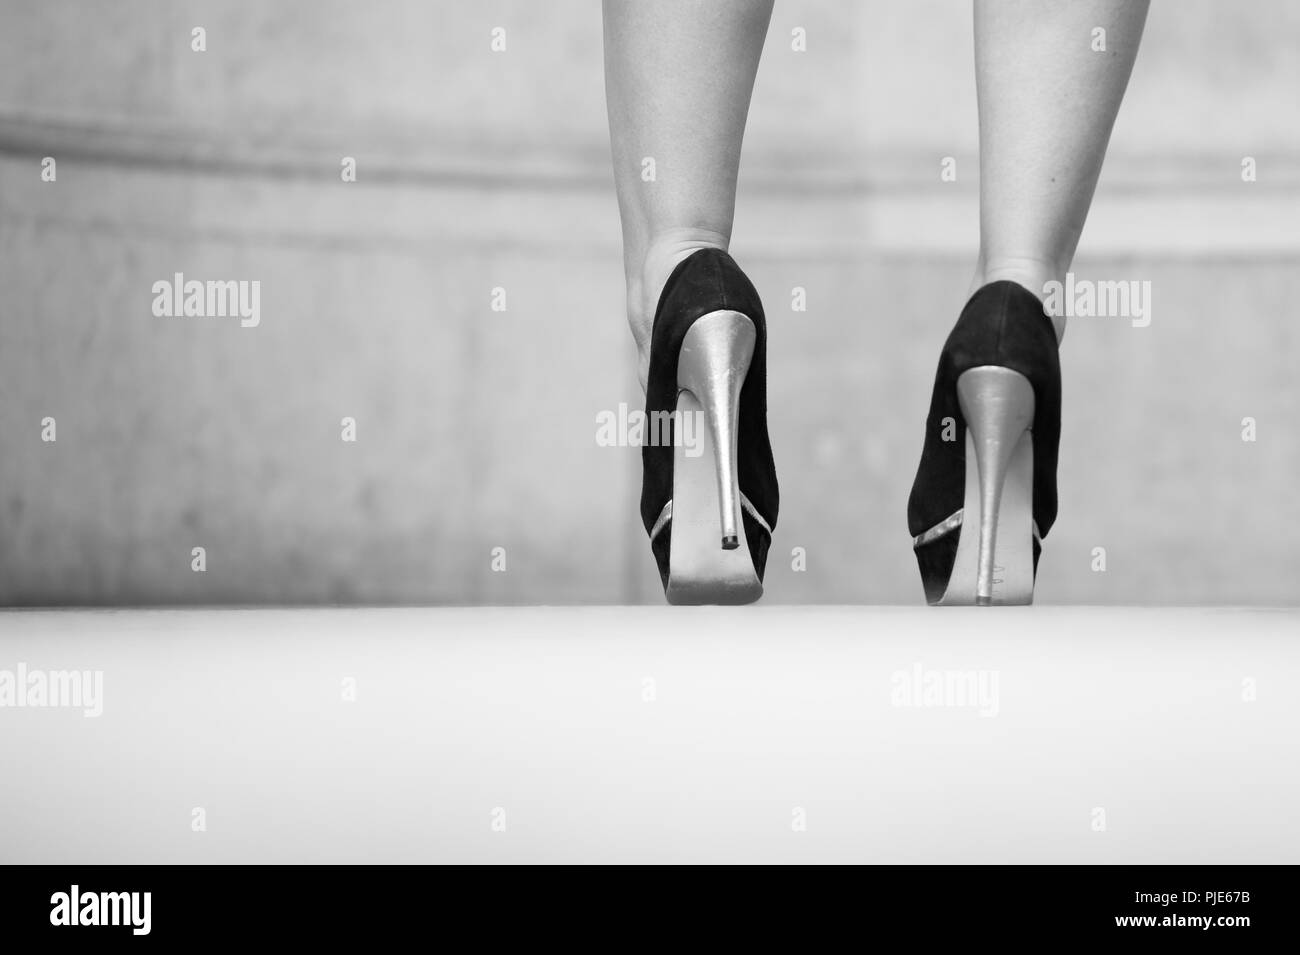 Rear view of lady's ankles in a smart pair of high heeled black and silver shoes. - Stock Image